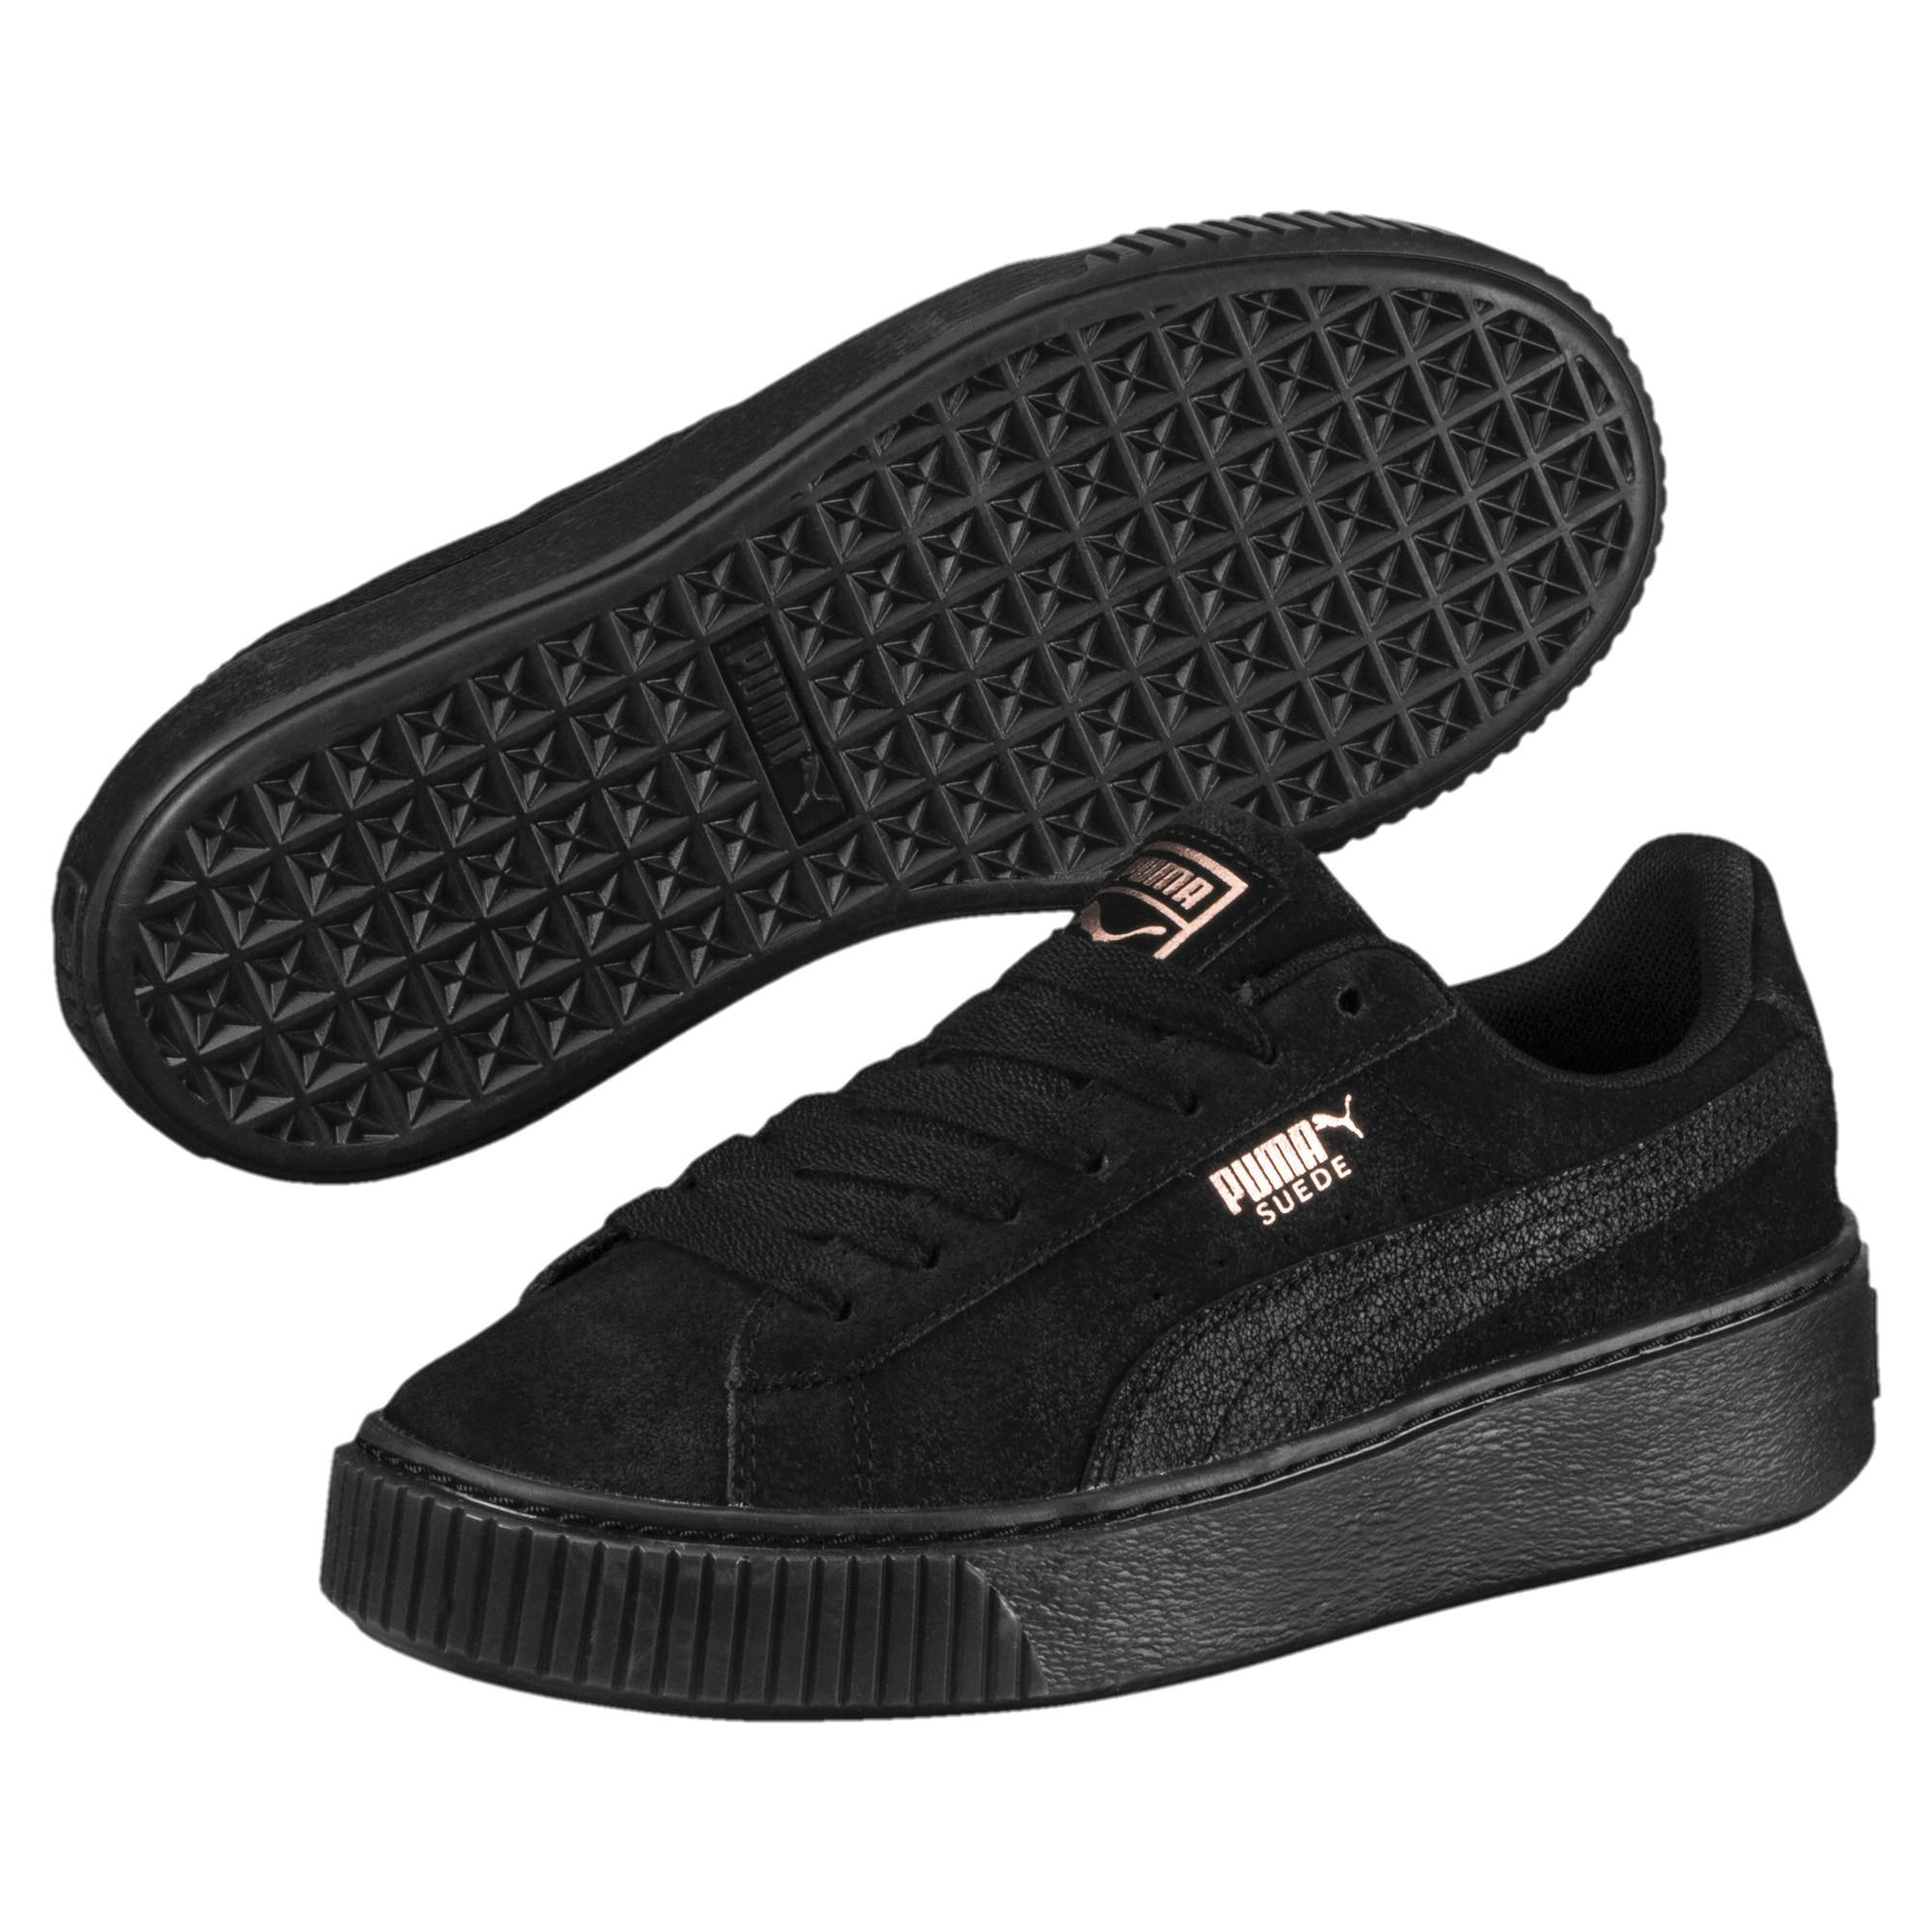 8ad5adc8fbe Lyst - PUMA Suede Platform Artica Women s Sneakers in Black